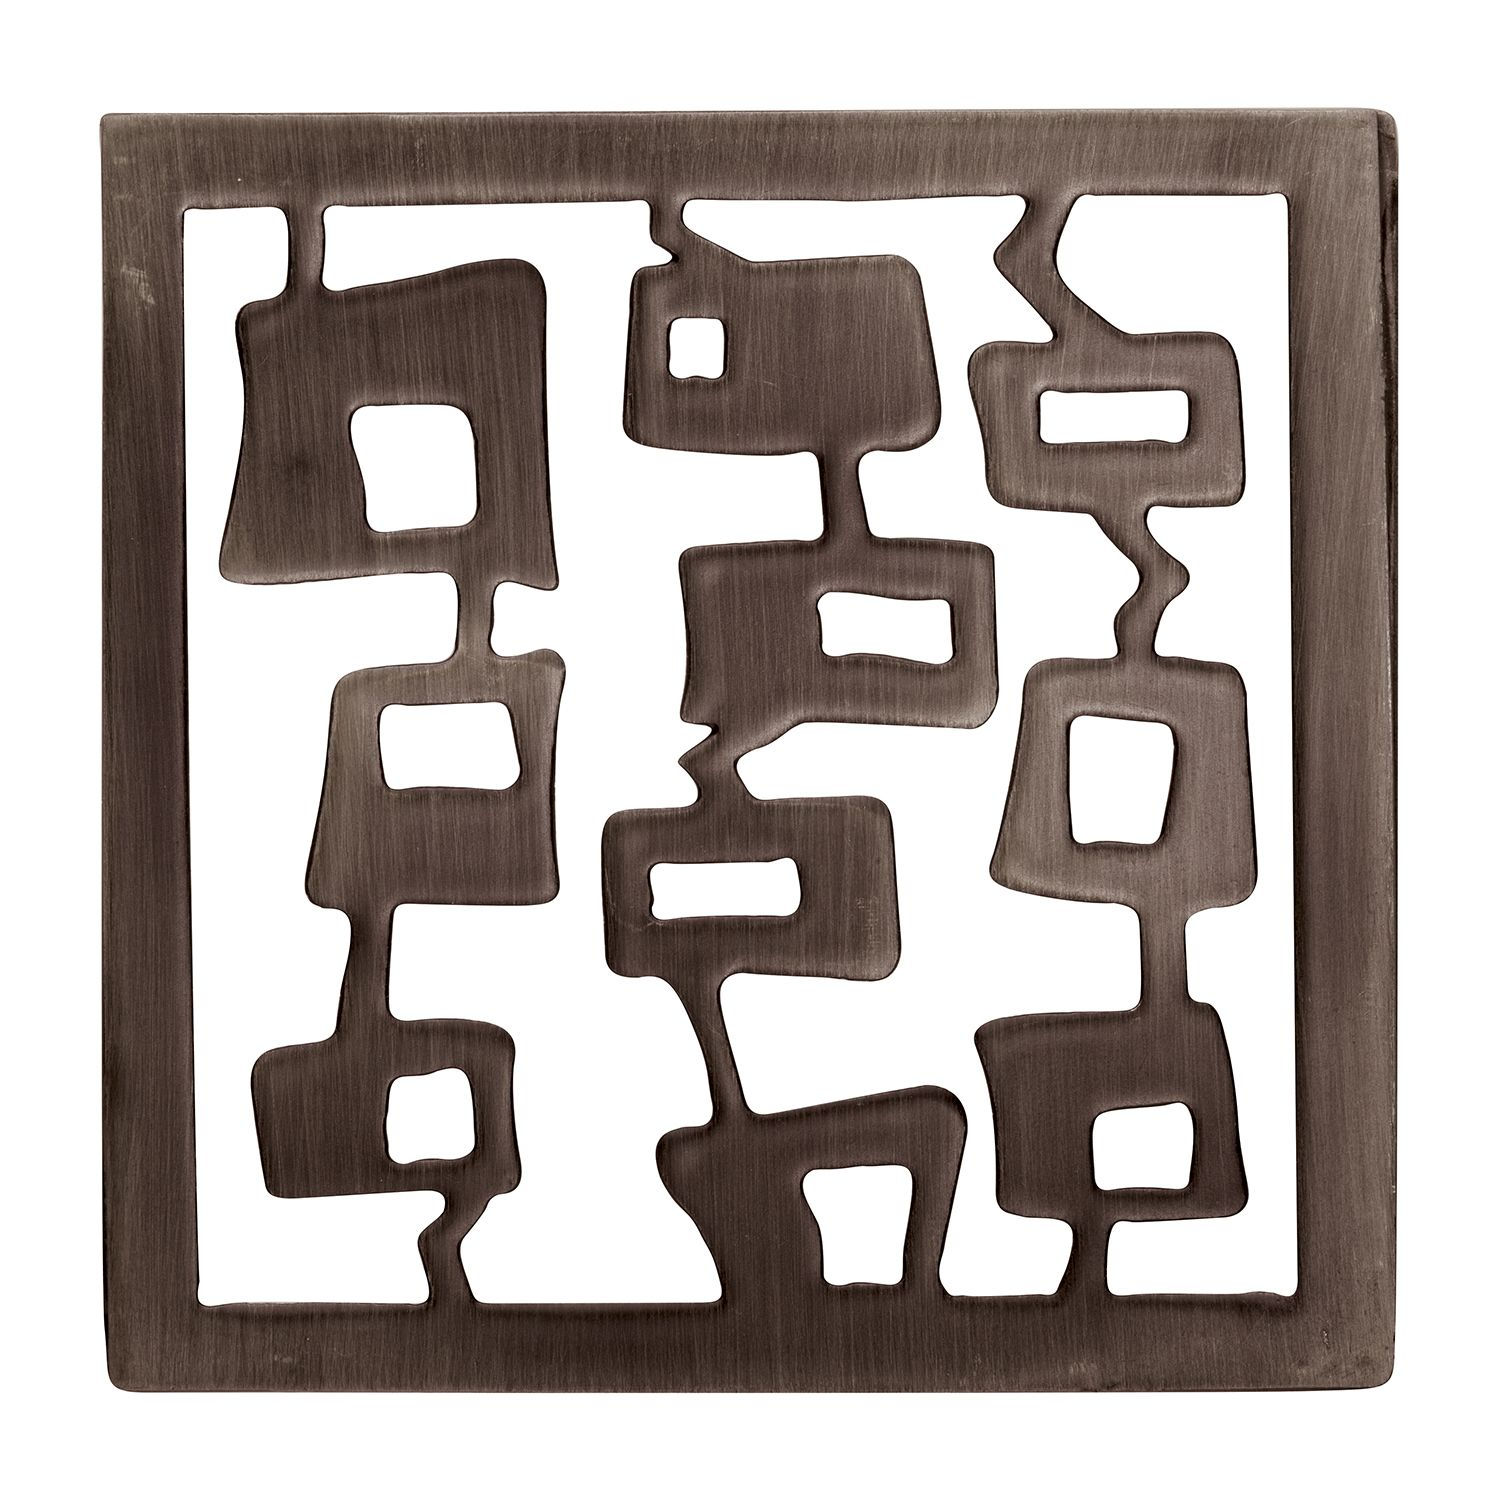 New Scentsy Gallery Frame – Copper Cosmo: Make a bold statement with ...